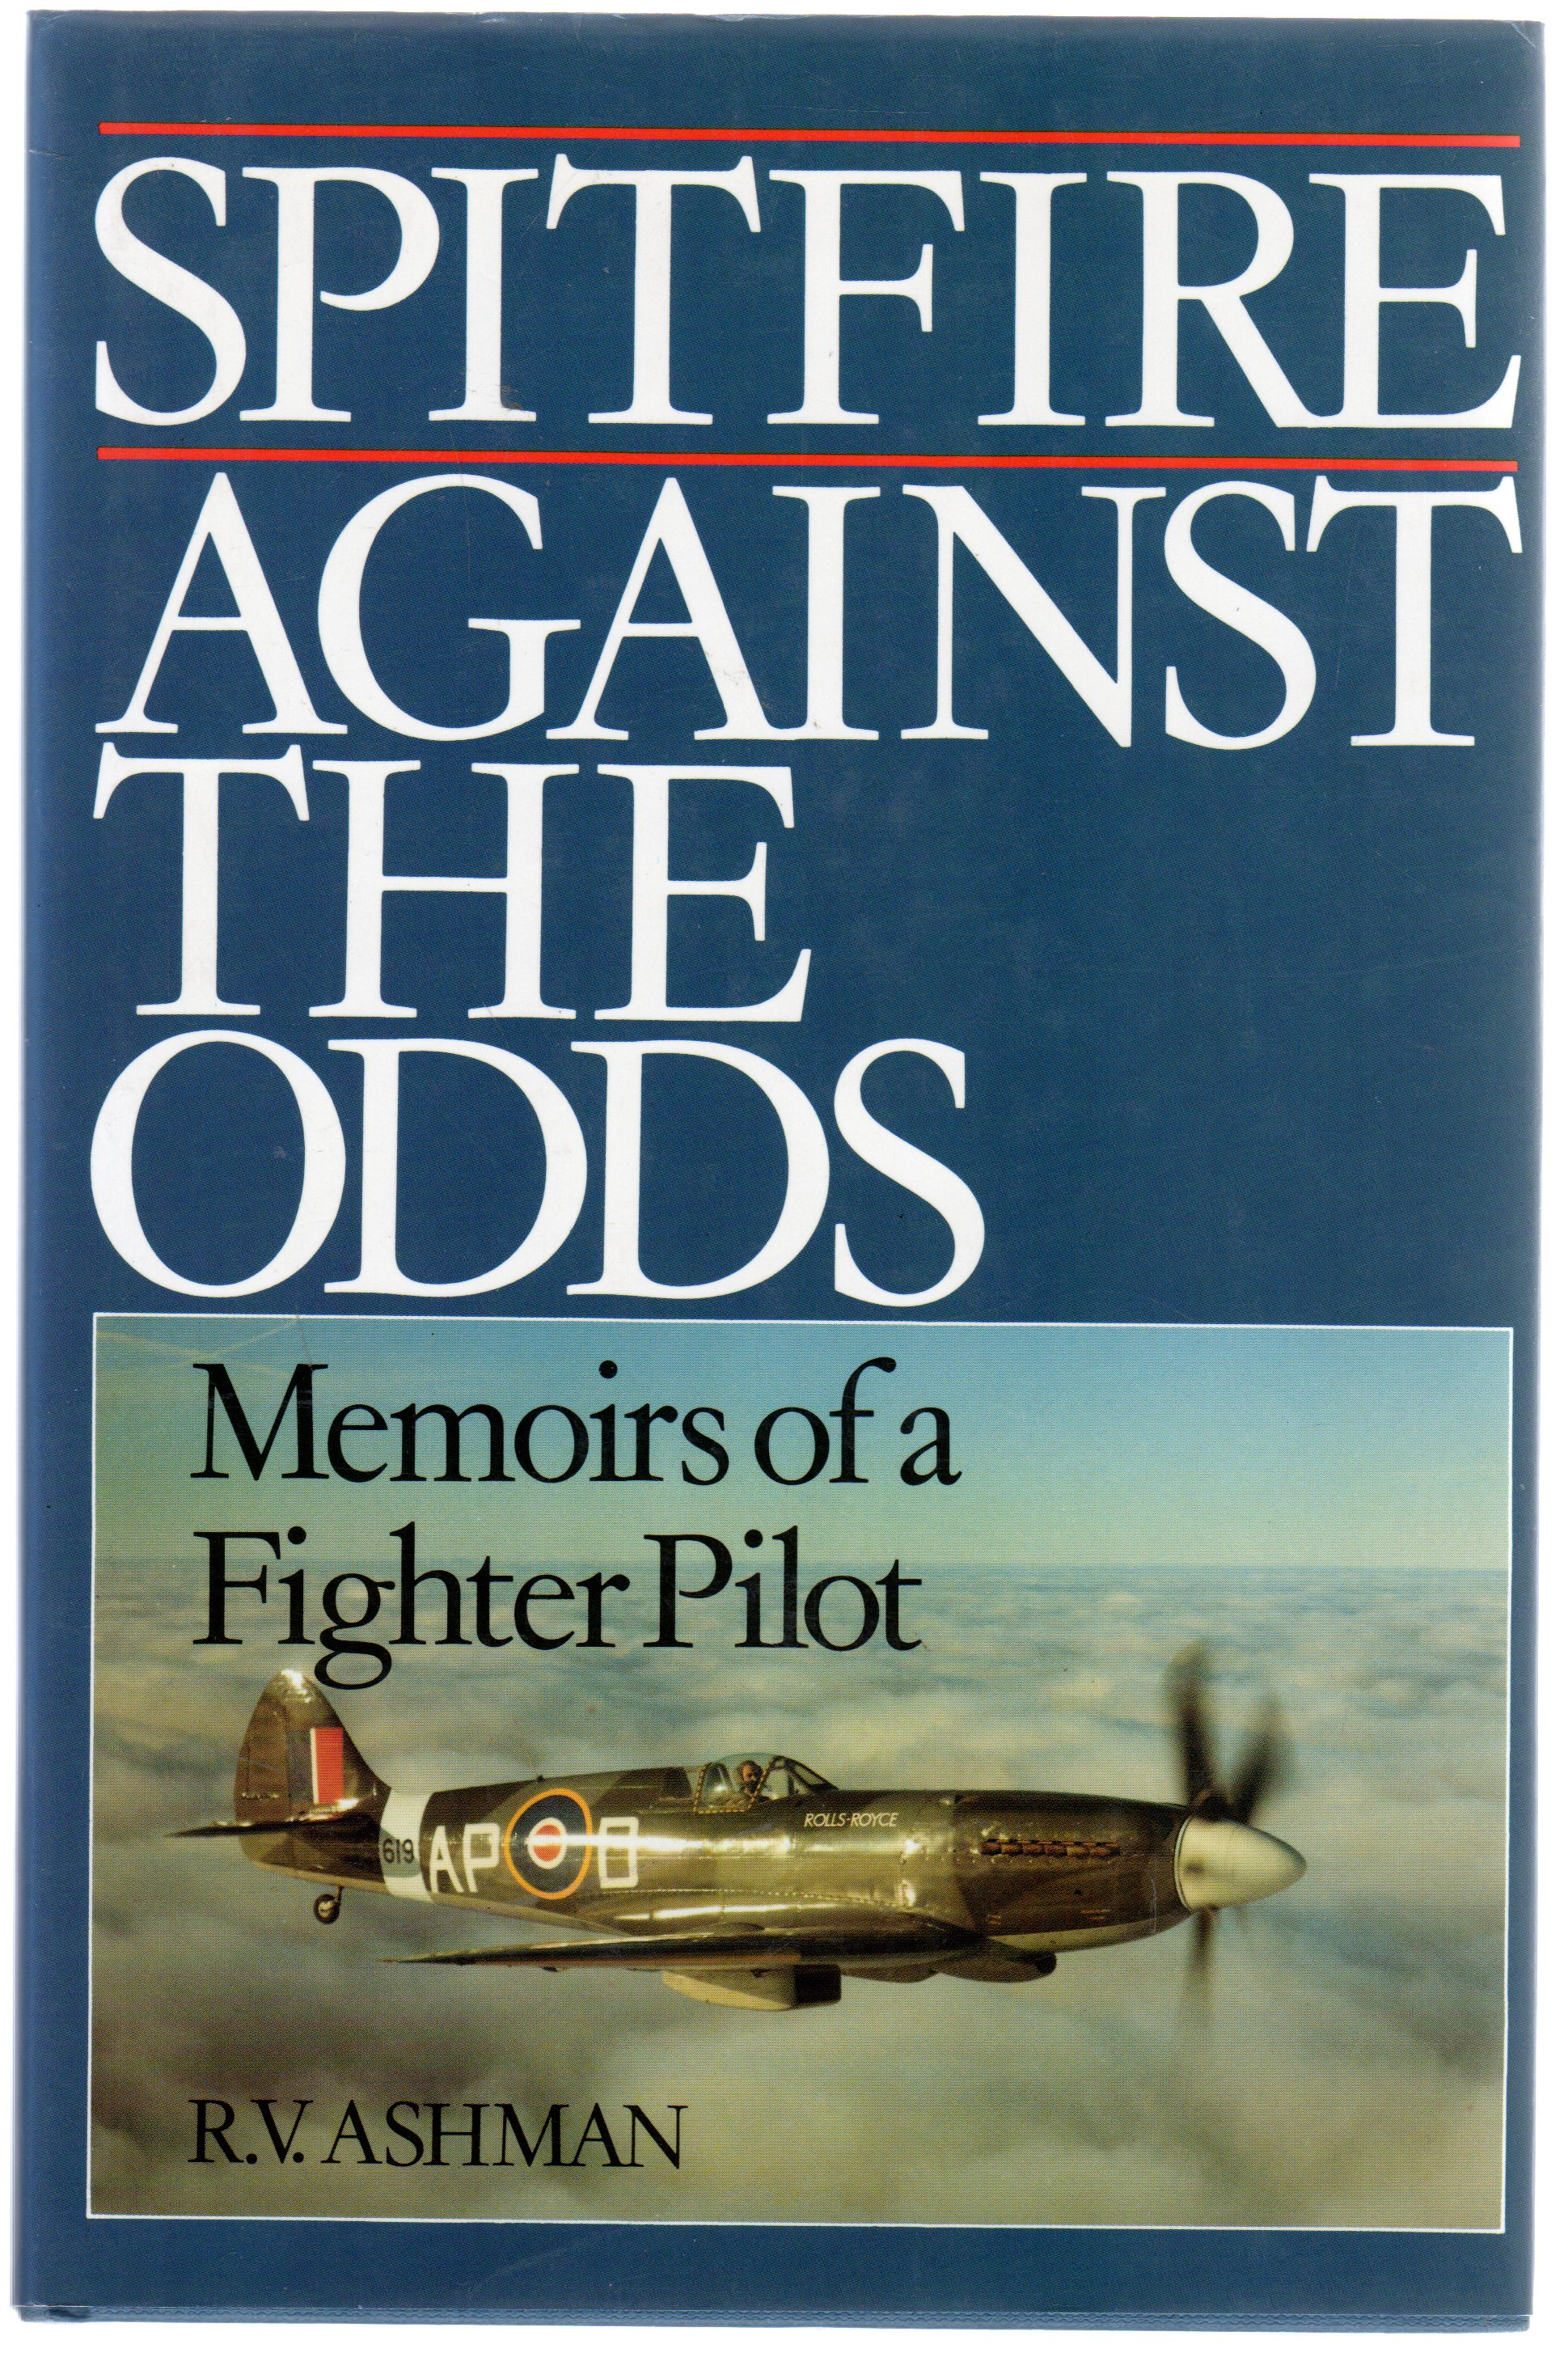 Image for Spitfire Against the Odds : Memoirs of a Fighter Pilot